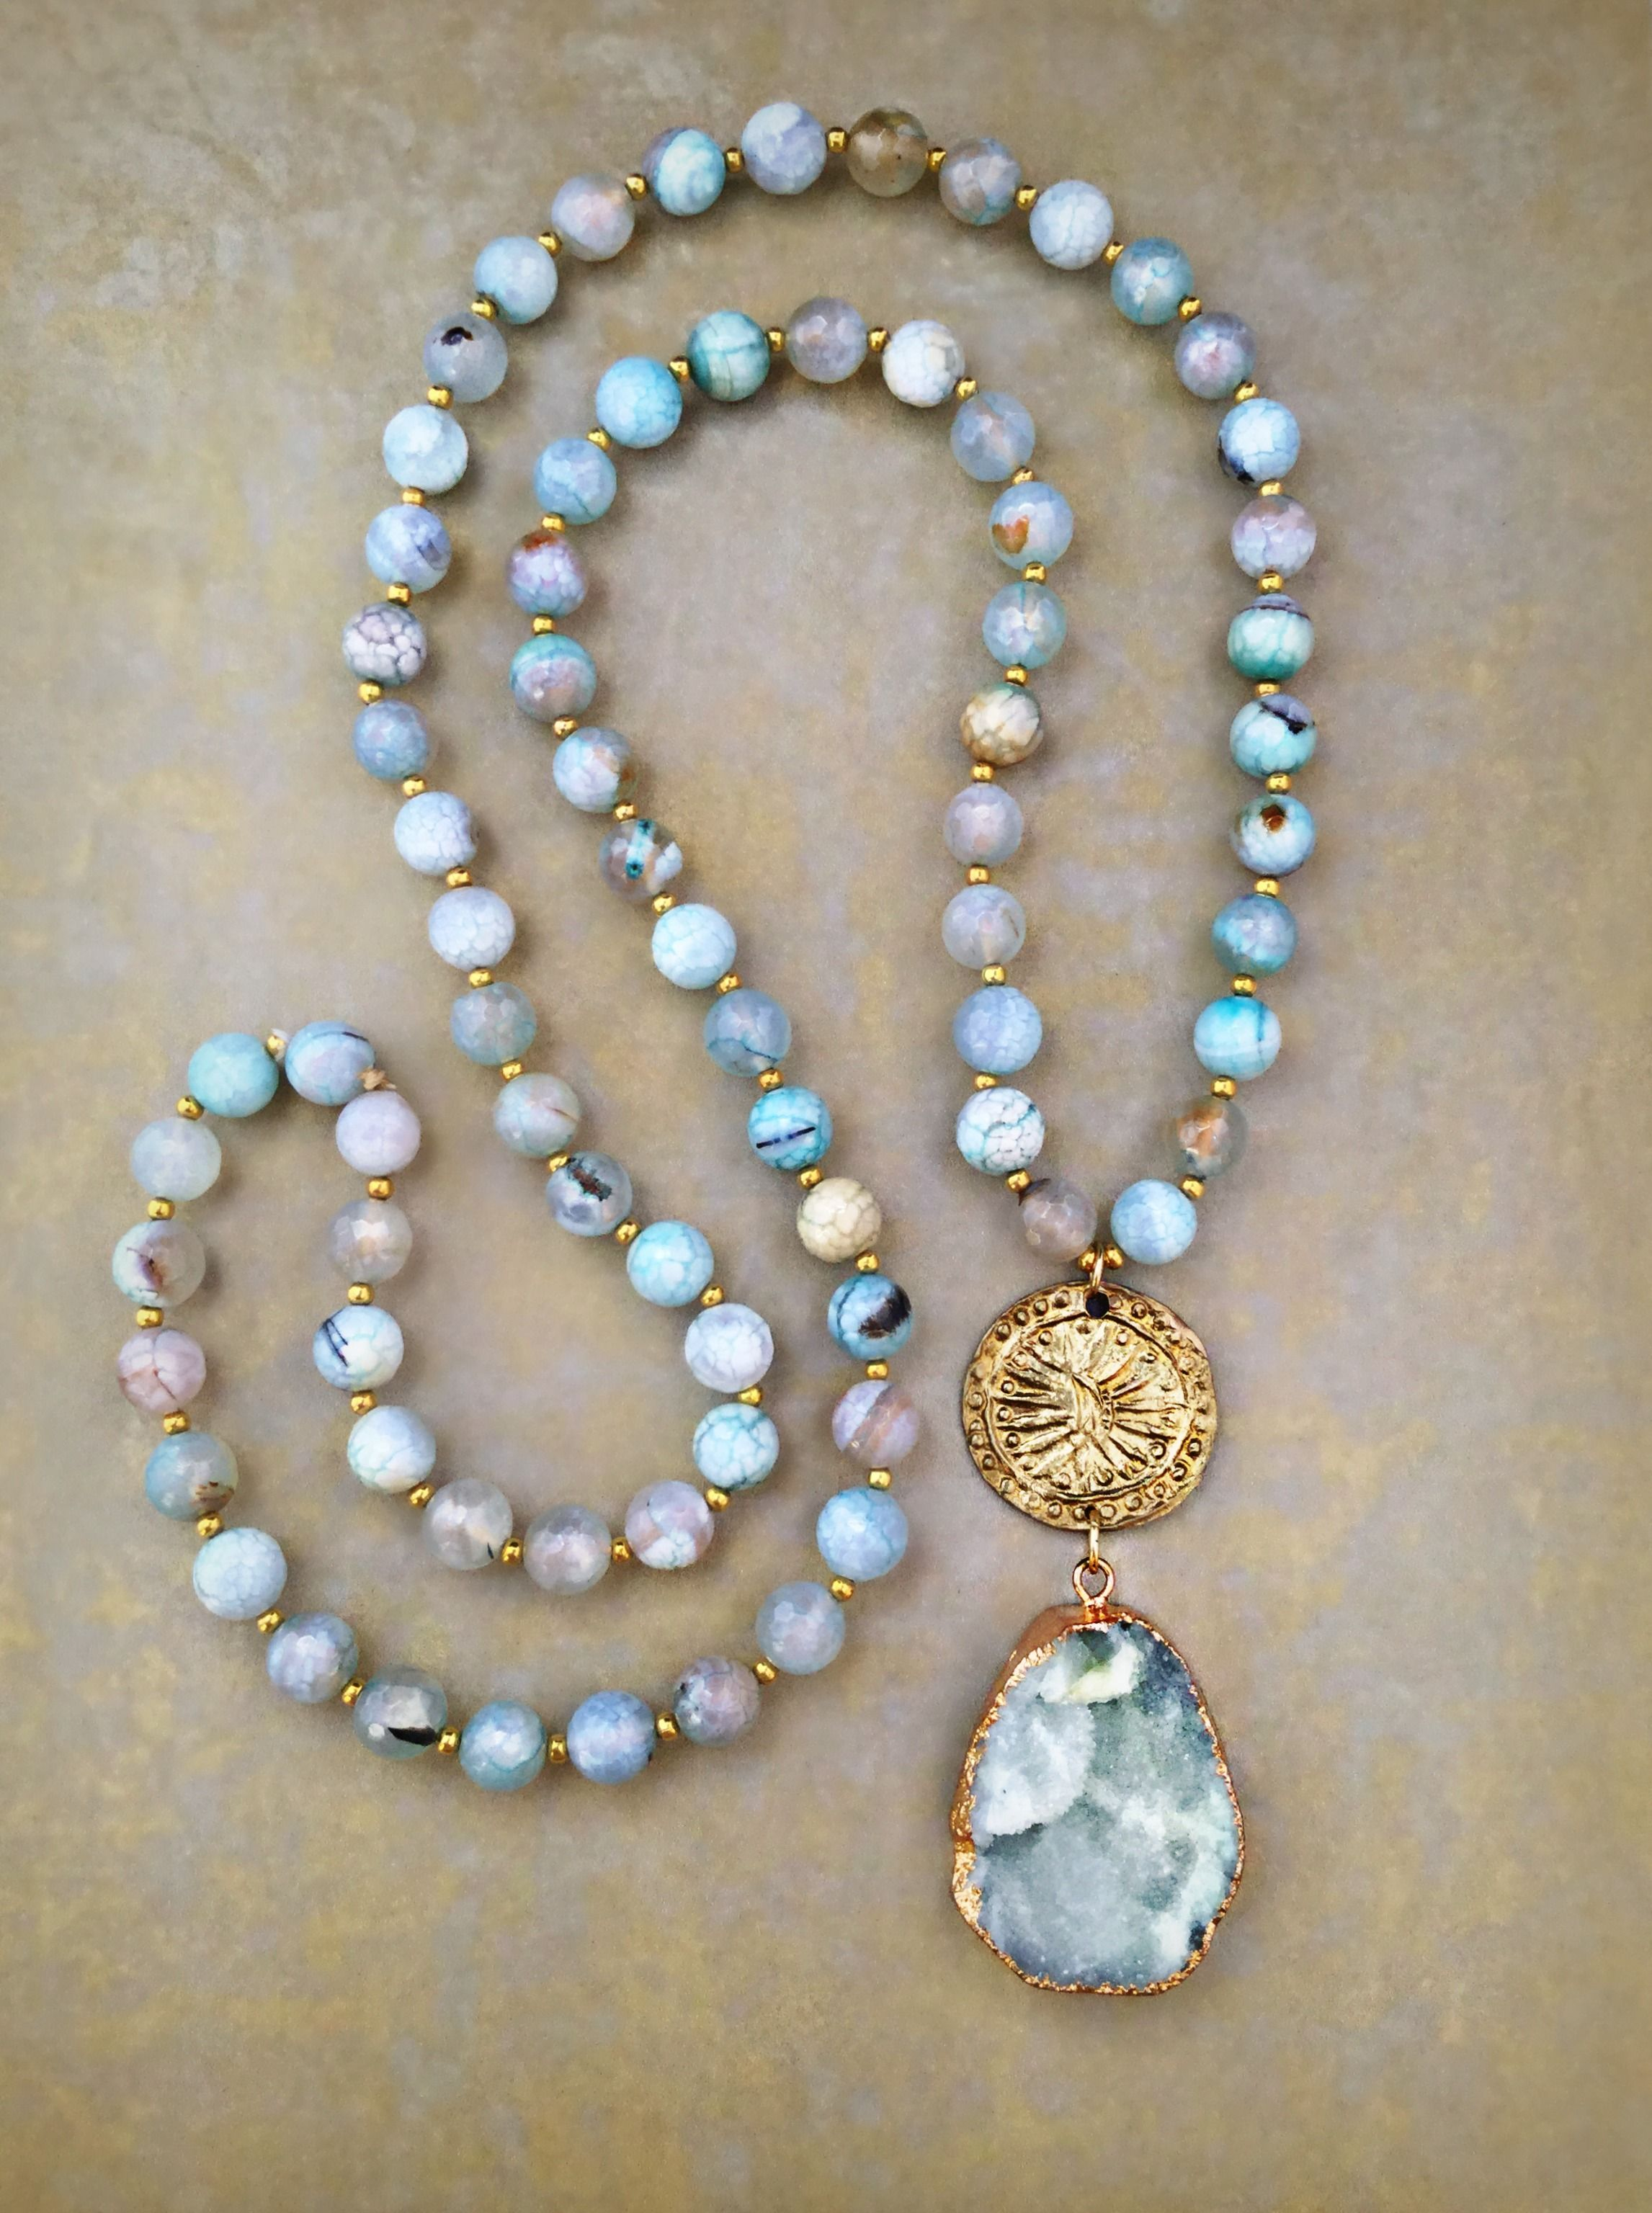 Aqua agate druzy pendant necklace with a gold coin 2017 bohemian aqua agate druzy pendant necklace with a gold coin aloadofball Images